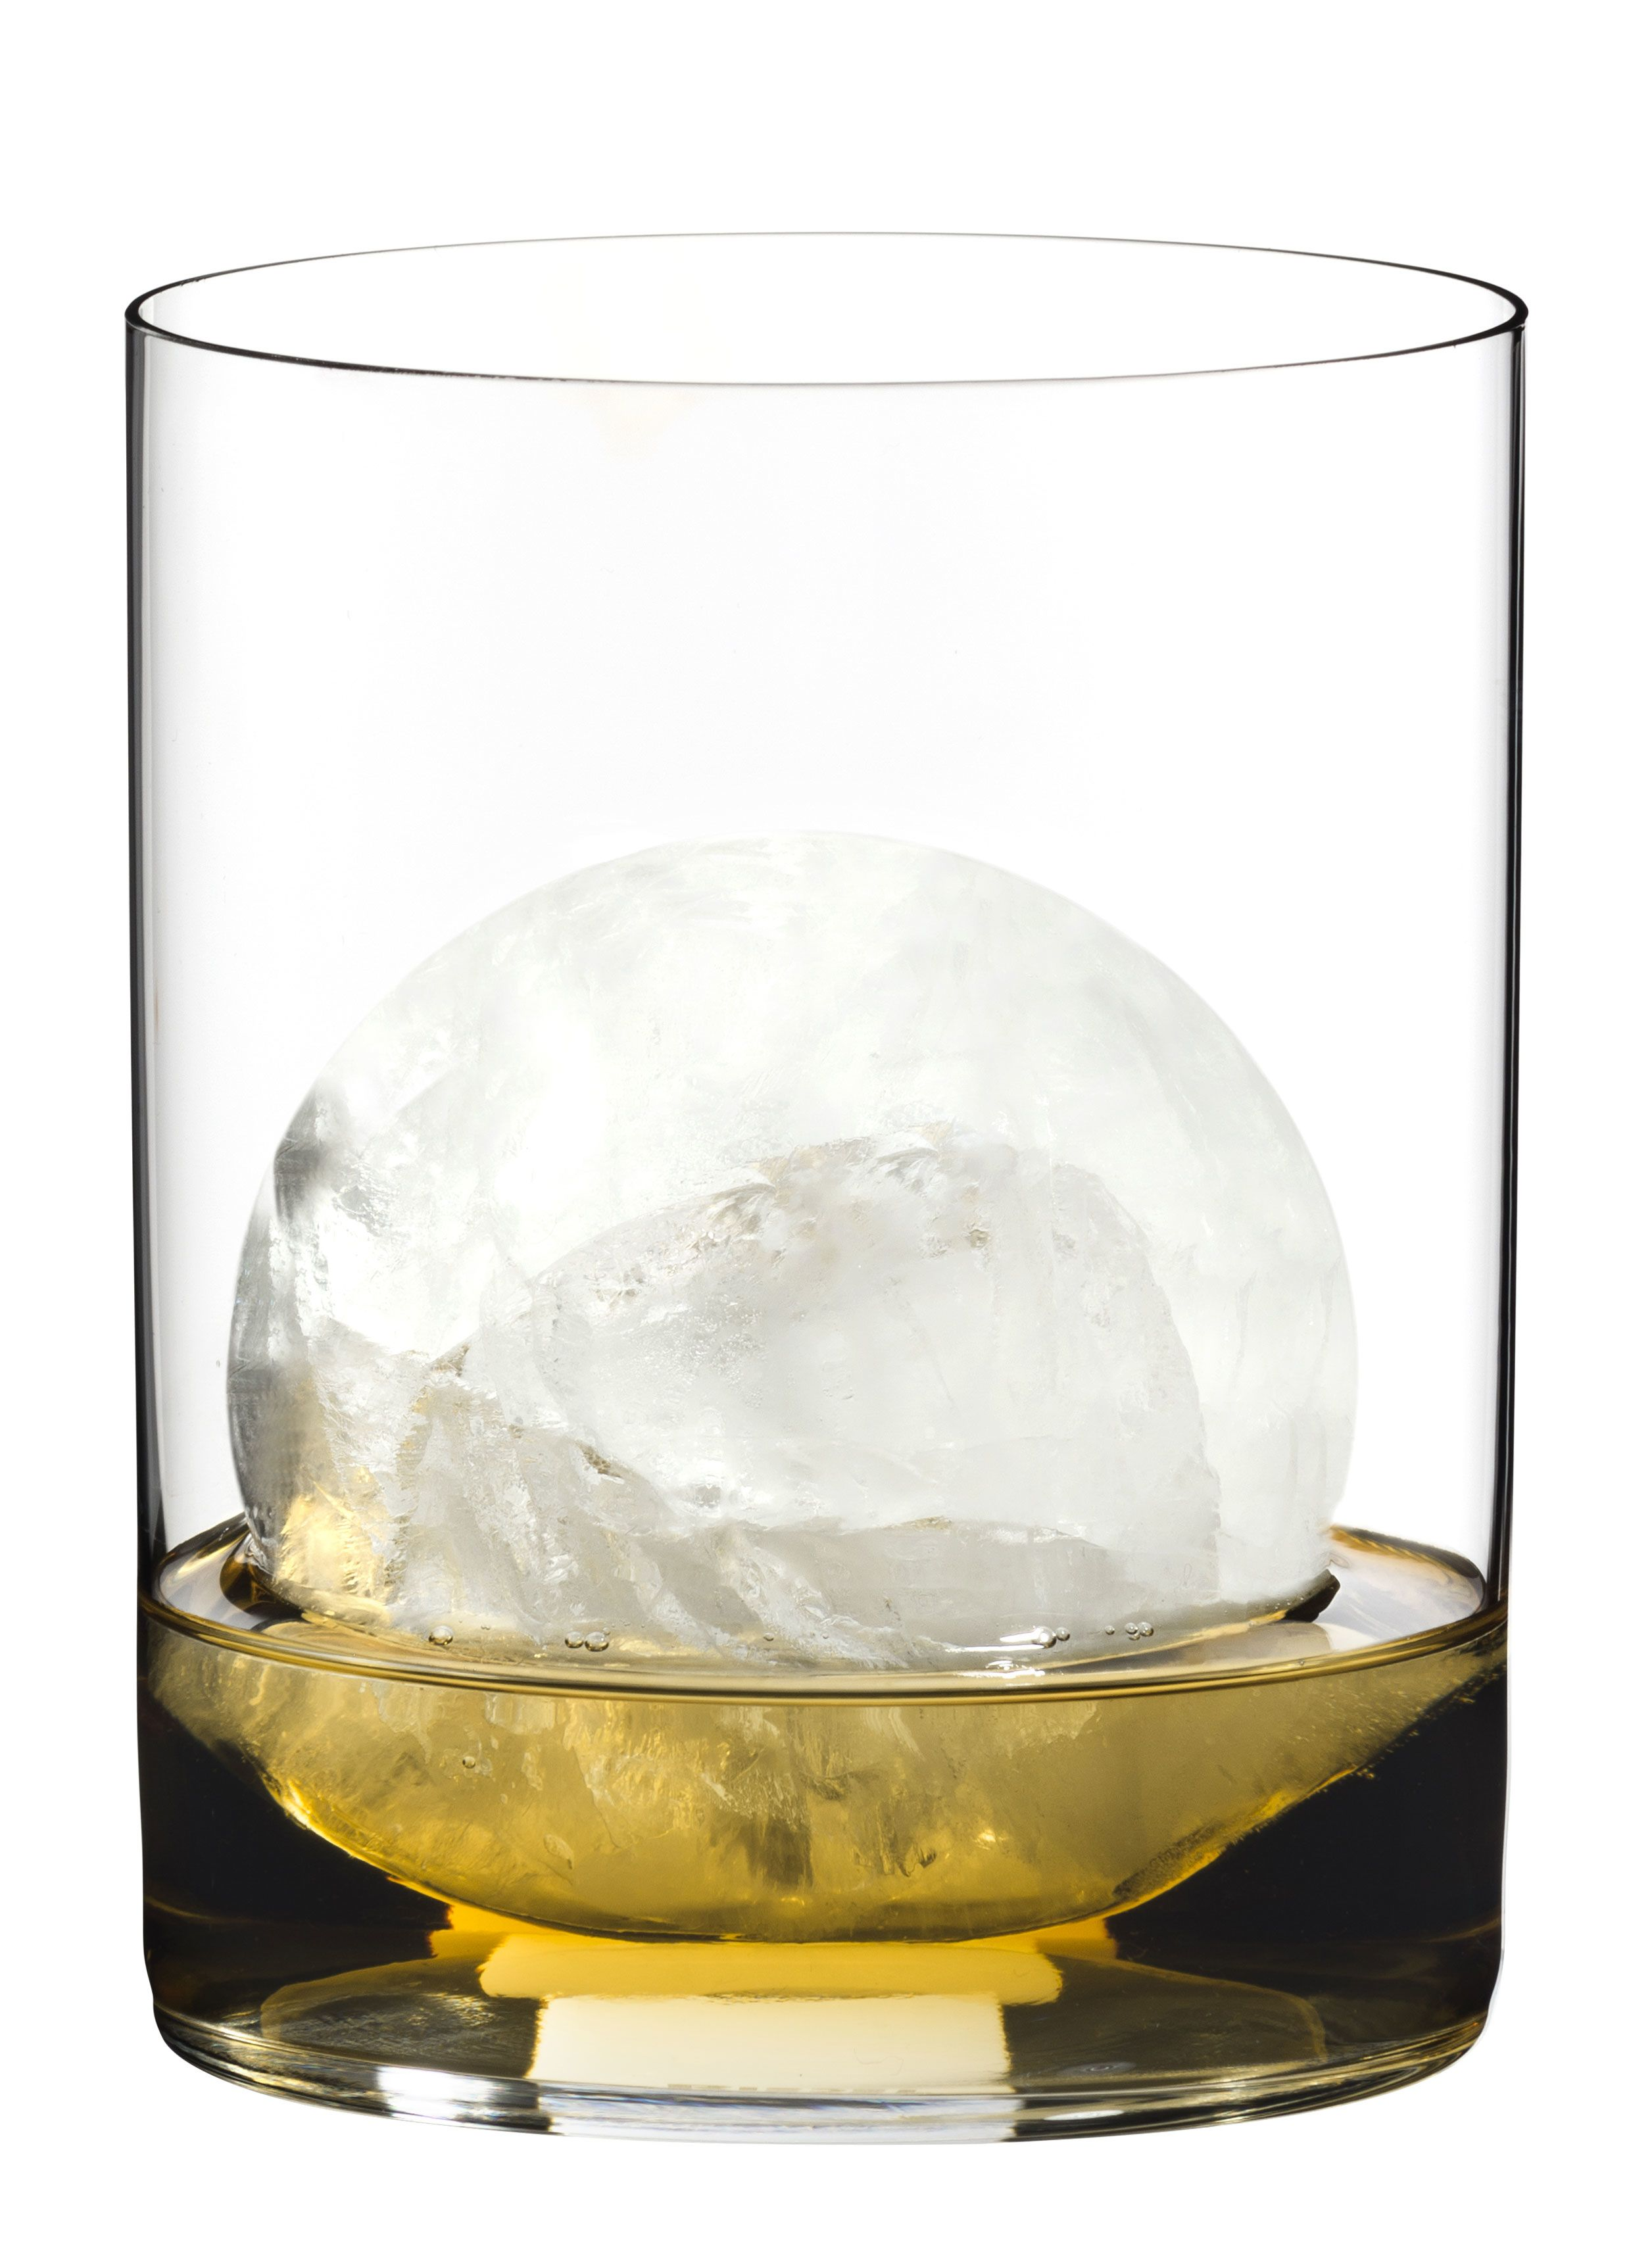 Riedel O Whiskey Glass (Set of 2)  Gift Product Image